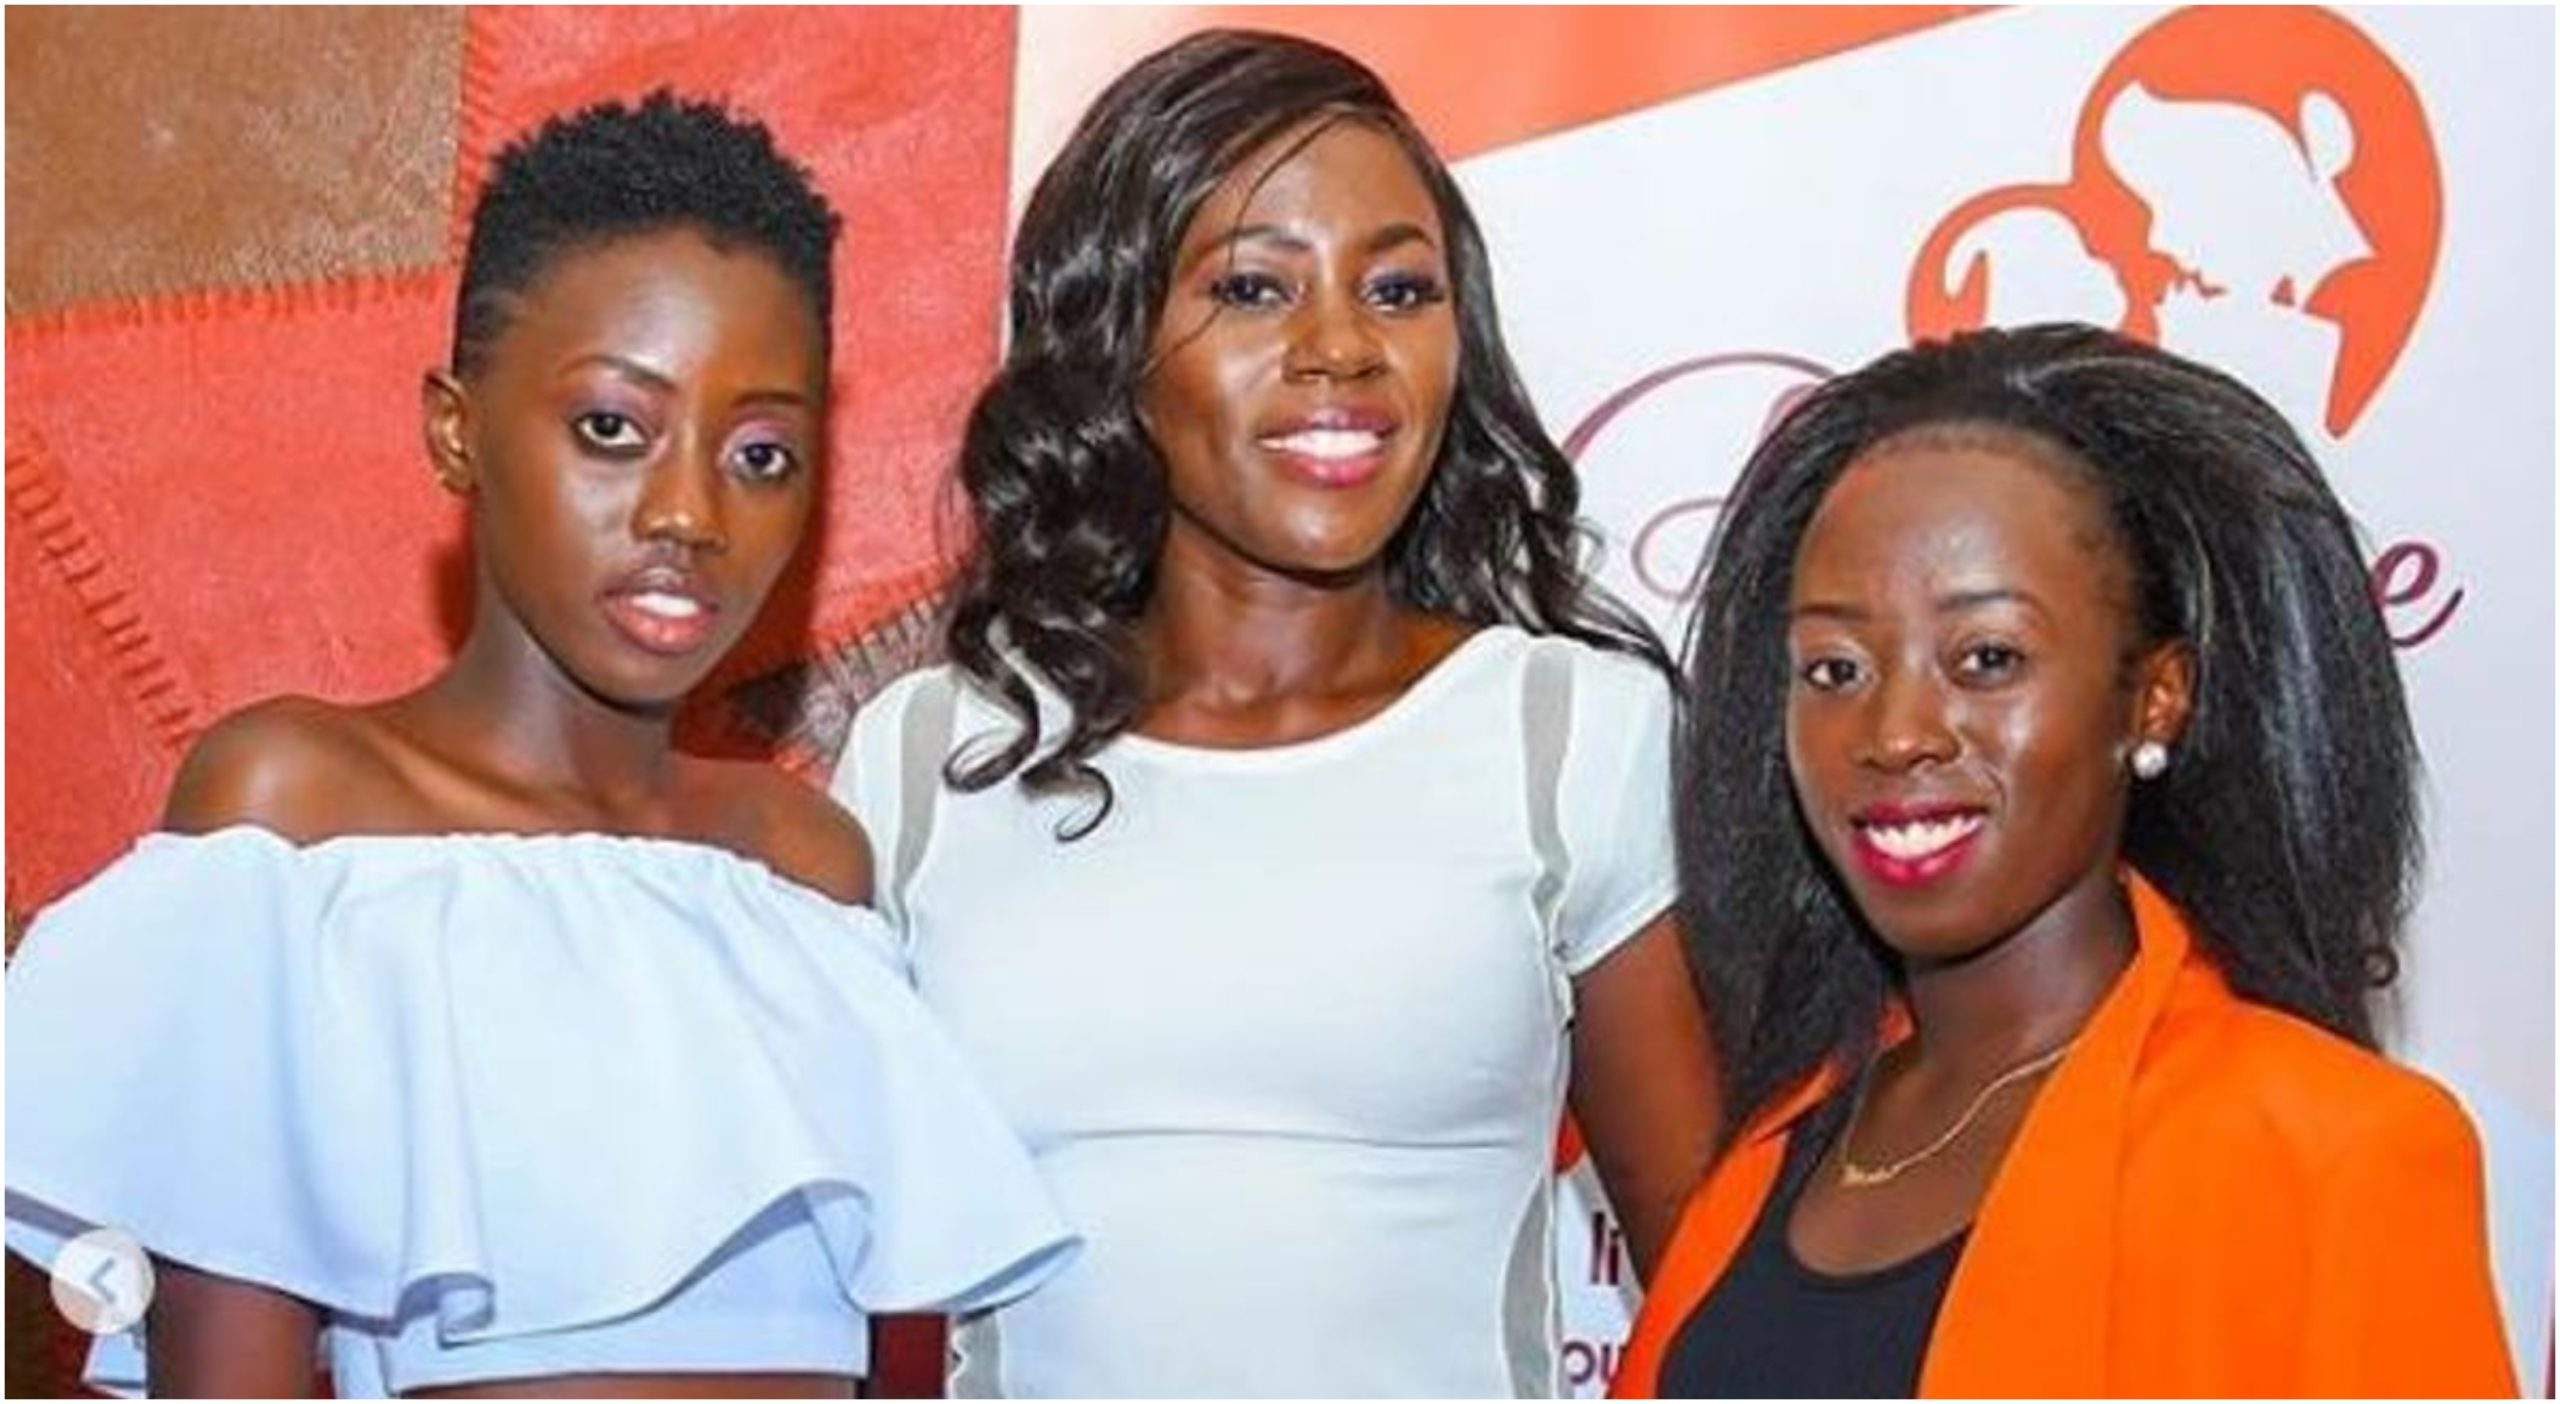 Aww! Akothee gives daughter blessings as she goes into marriage (Photos)